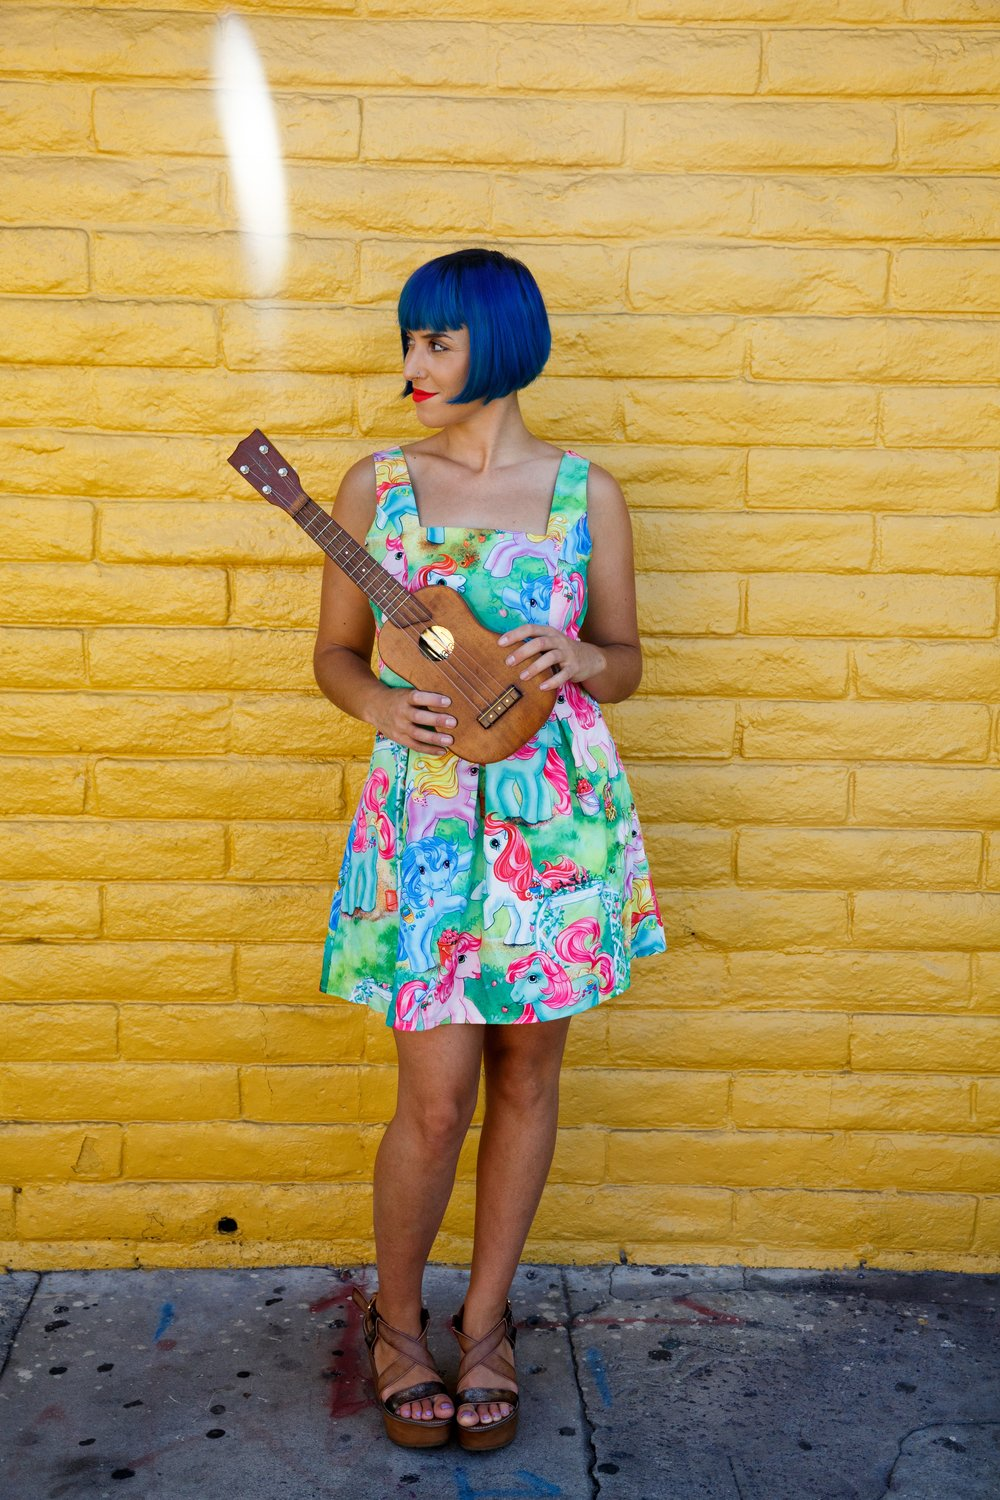 Peanut uke pony dress yellow brick wall.jpg